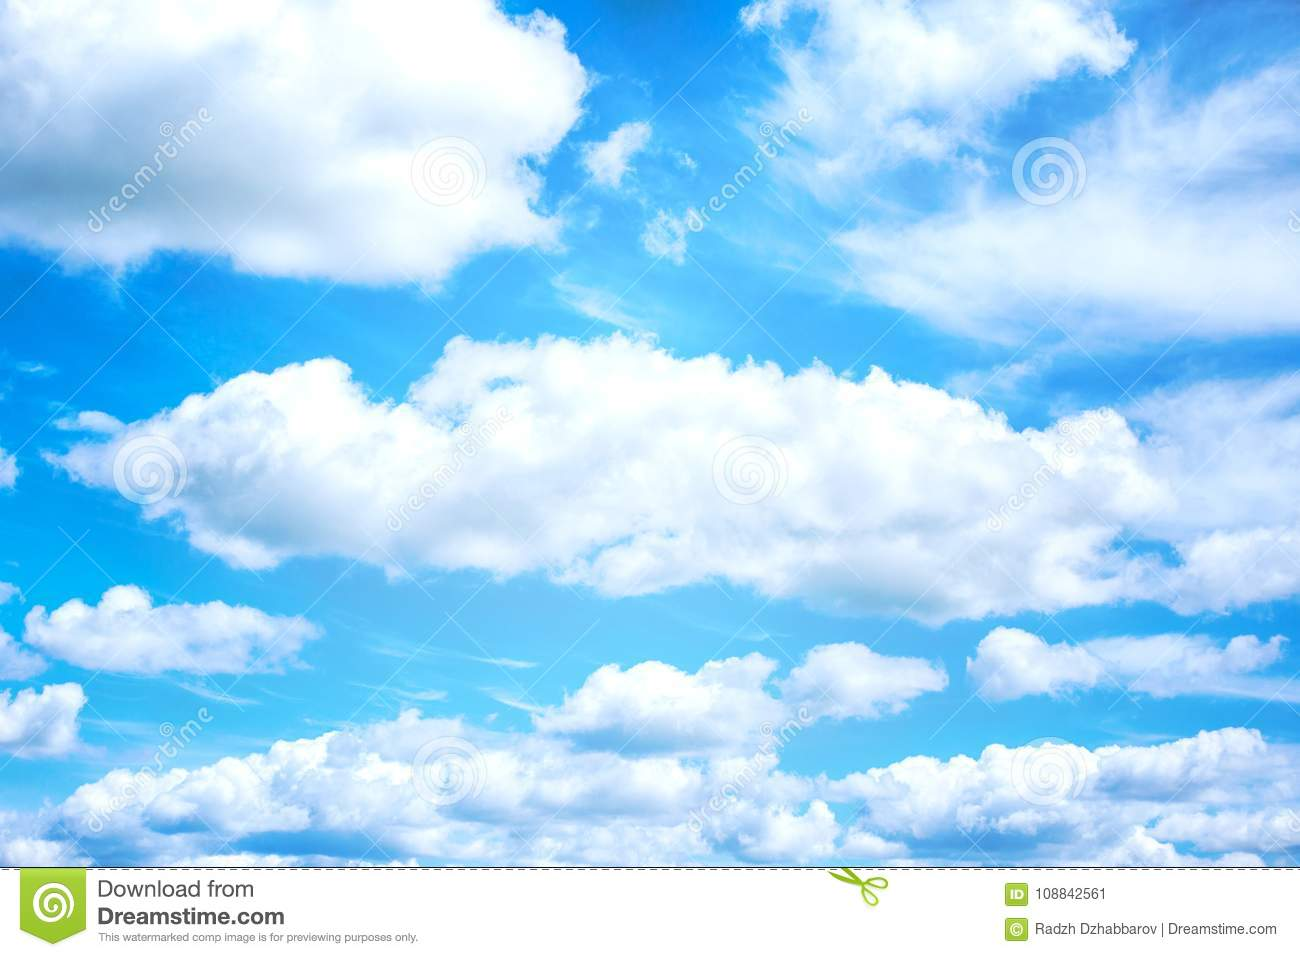 Beautiful Blue Sky And White Clouds Background Wallpaper Stock Image Image Of Cloud Landscape 108842561